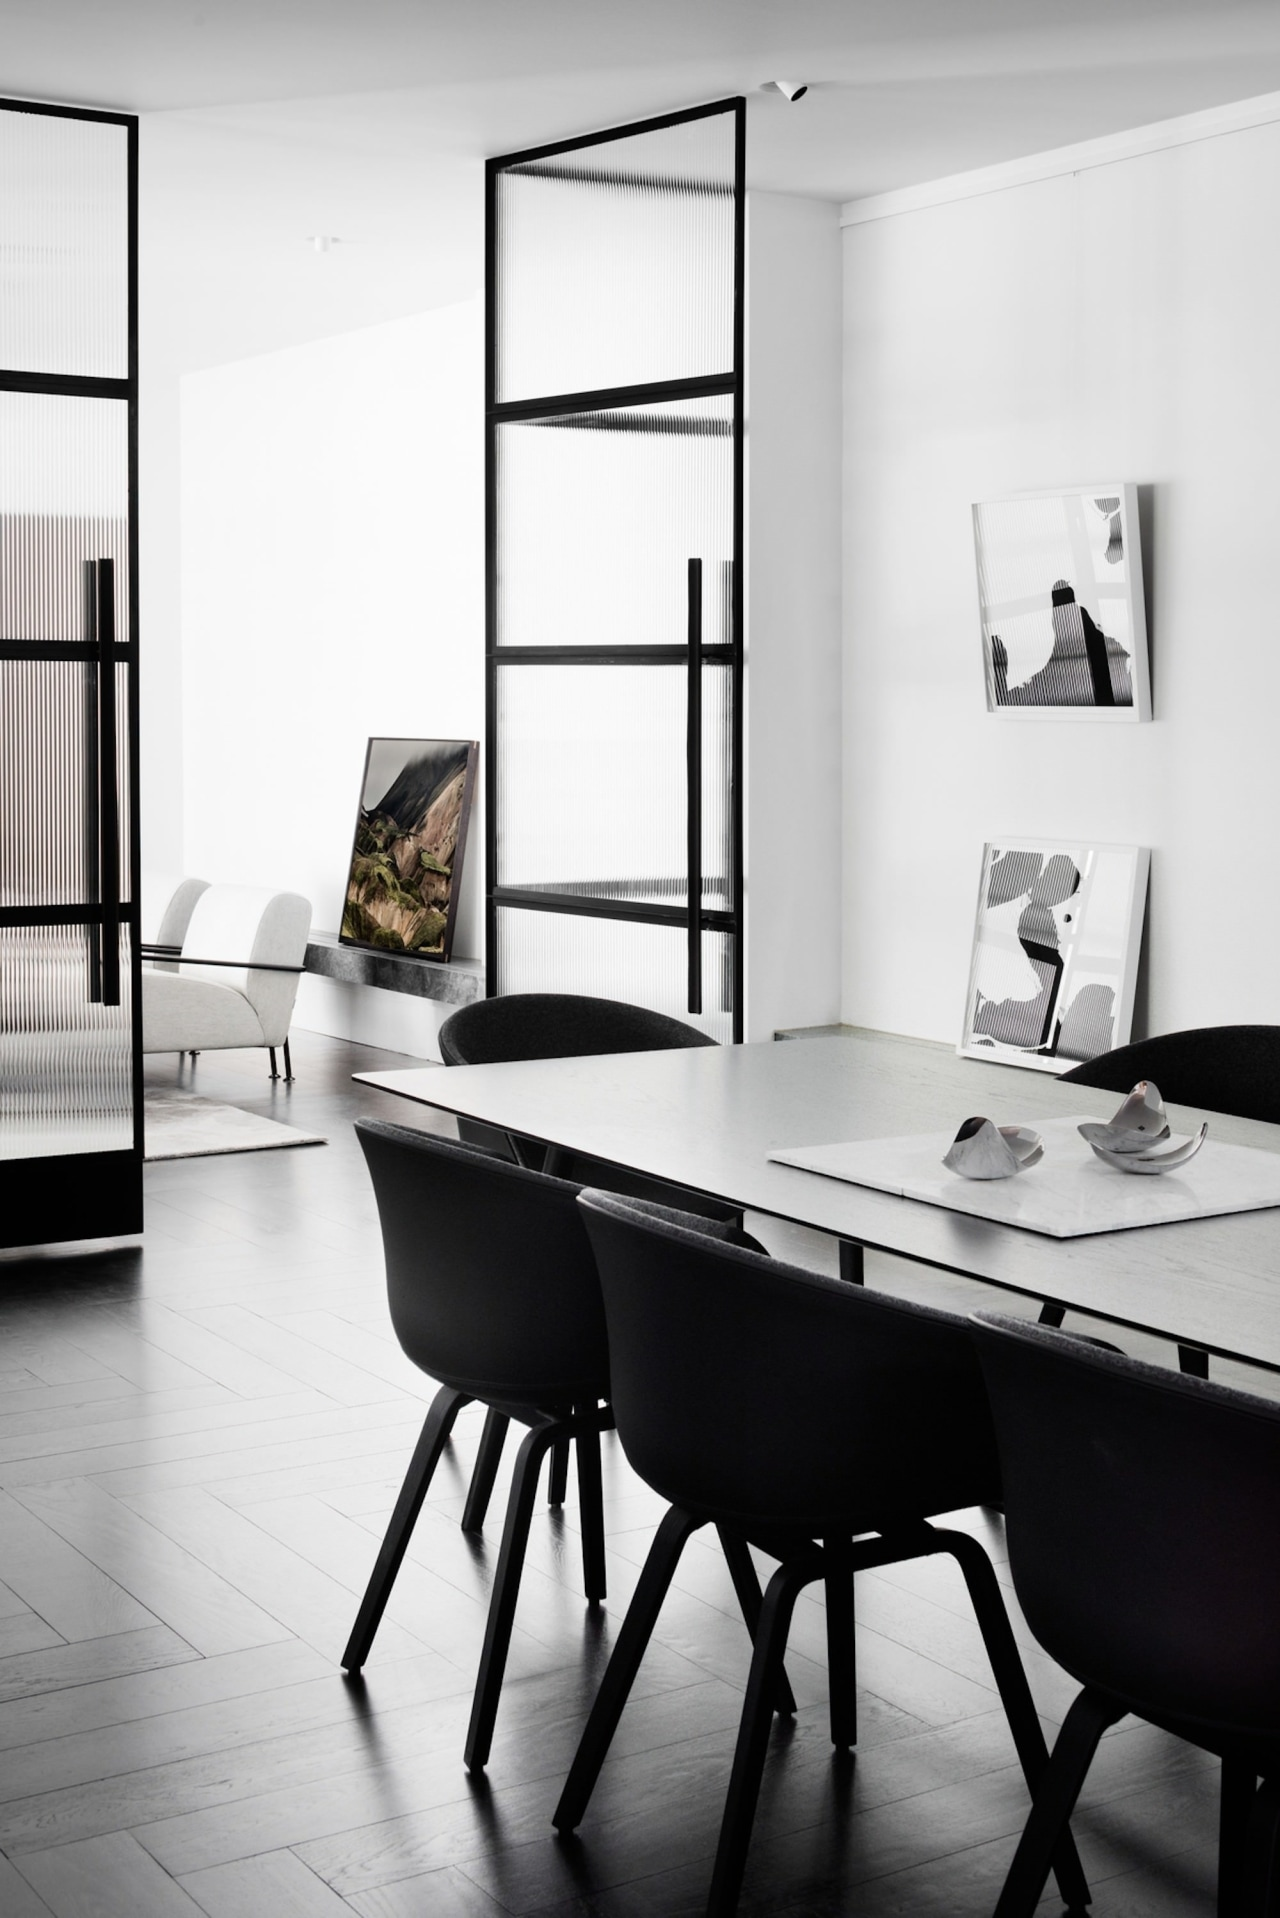 The dining area with angled mirrors black and white, chair, furniture, interior design, product design, shelf, shelving, table, white